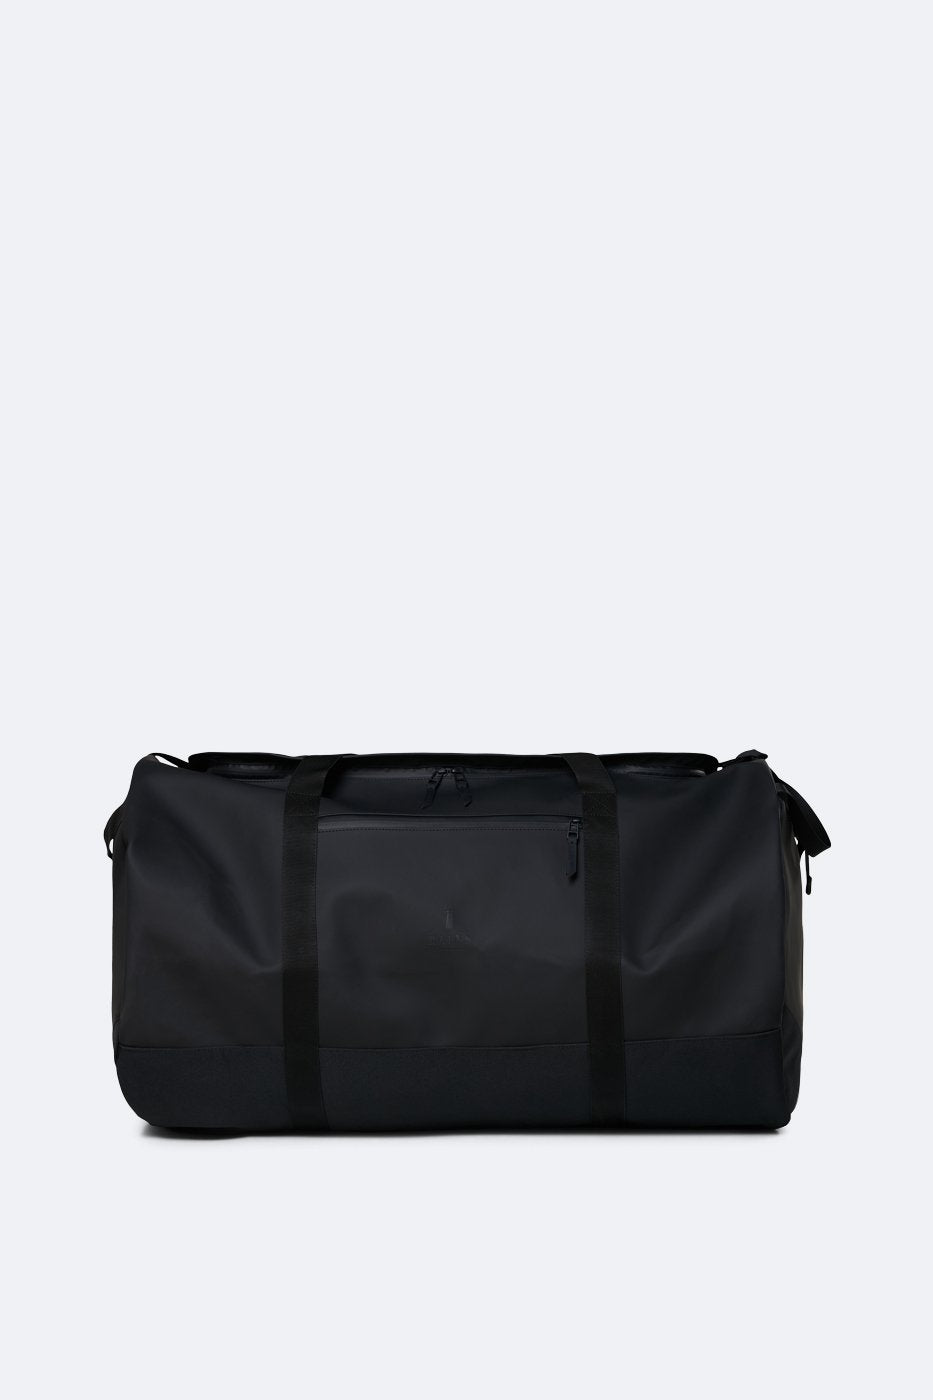 Duffel Bag Xtra Large